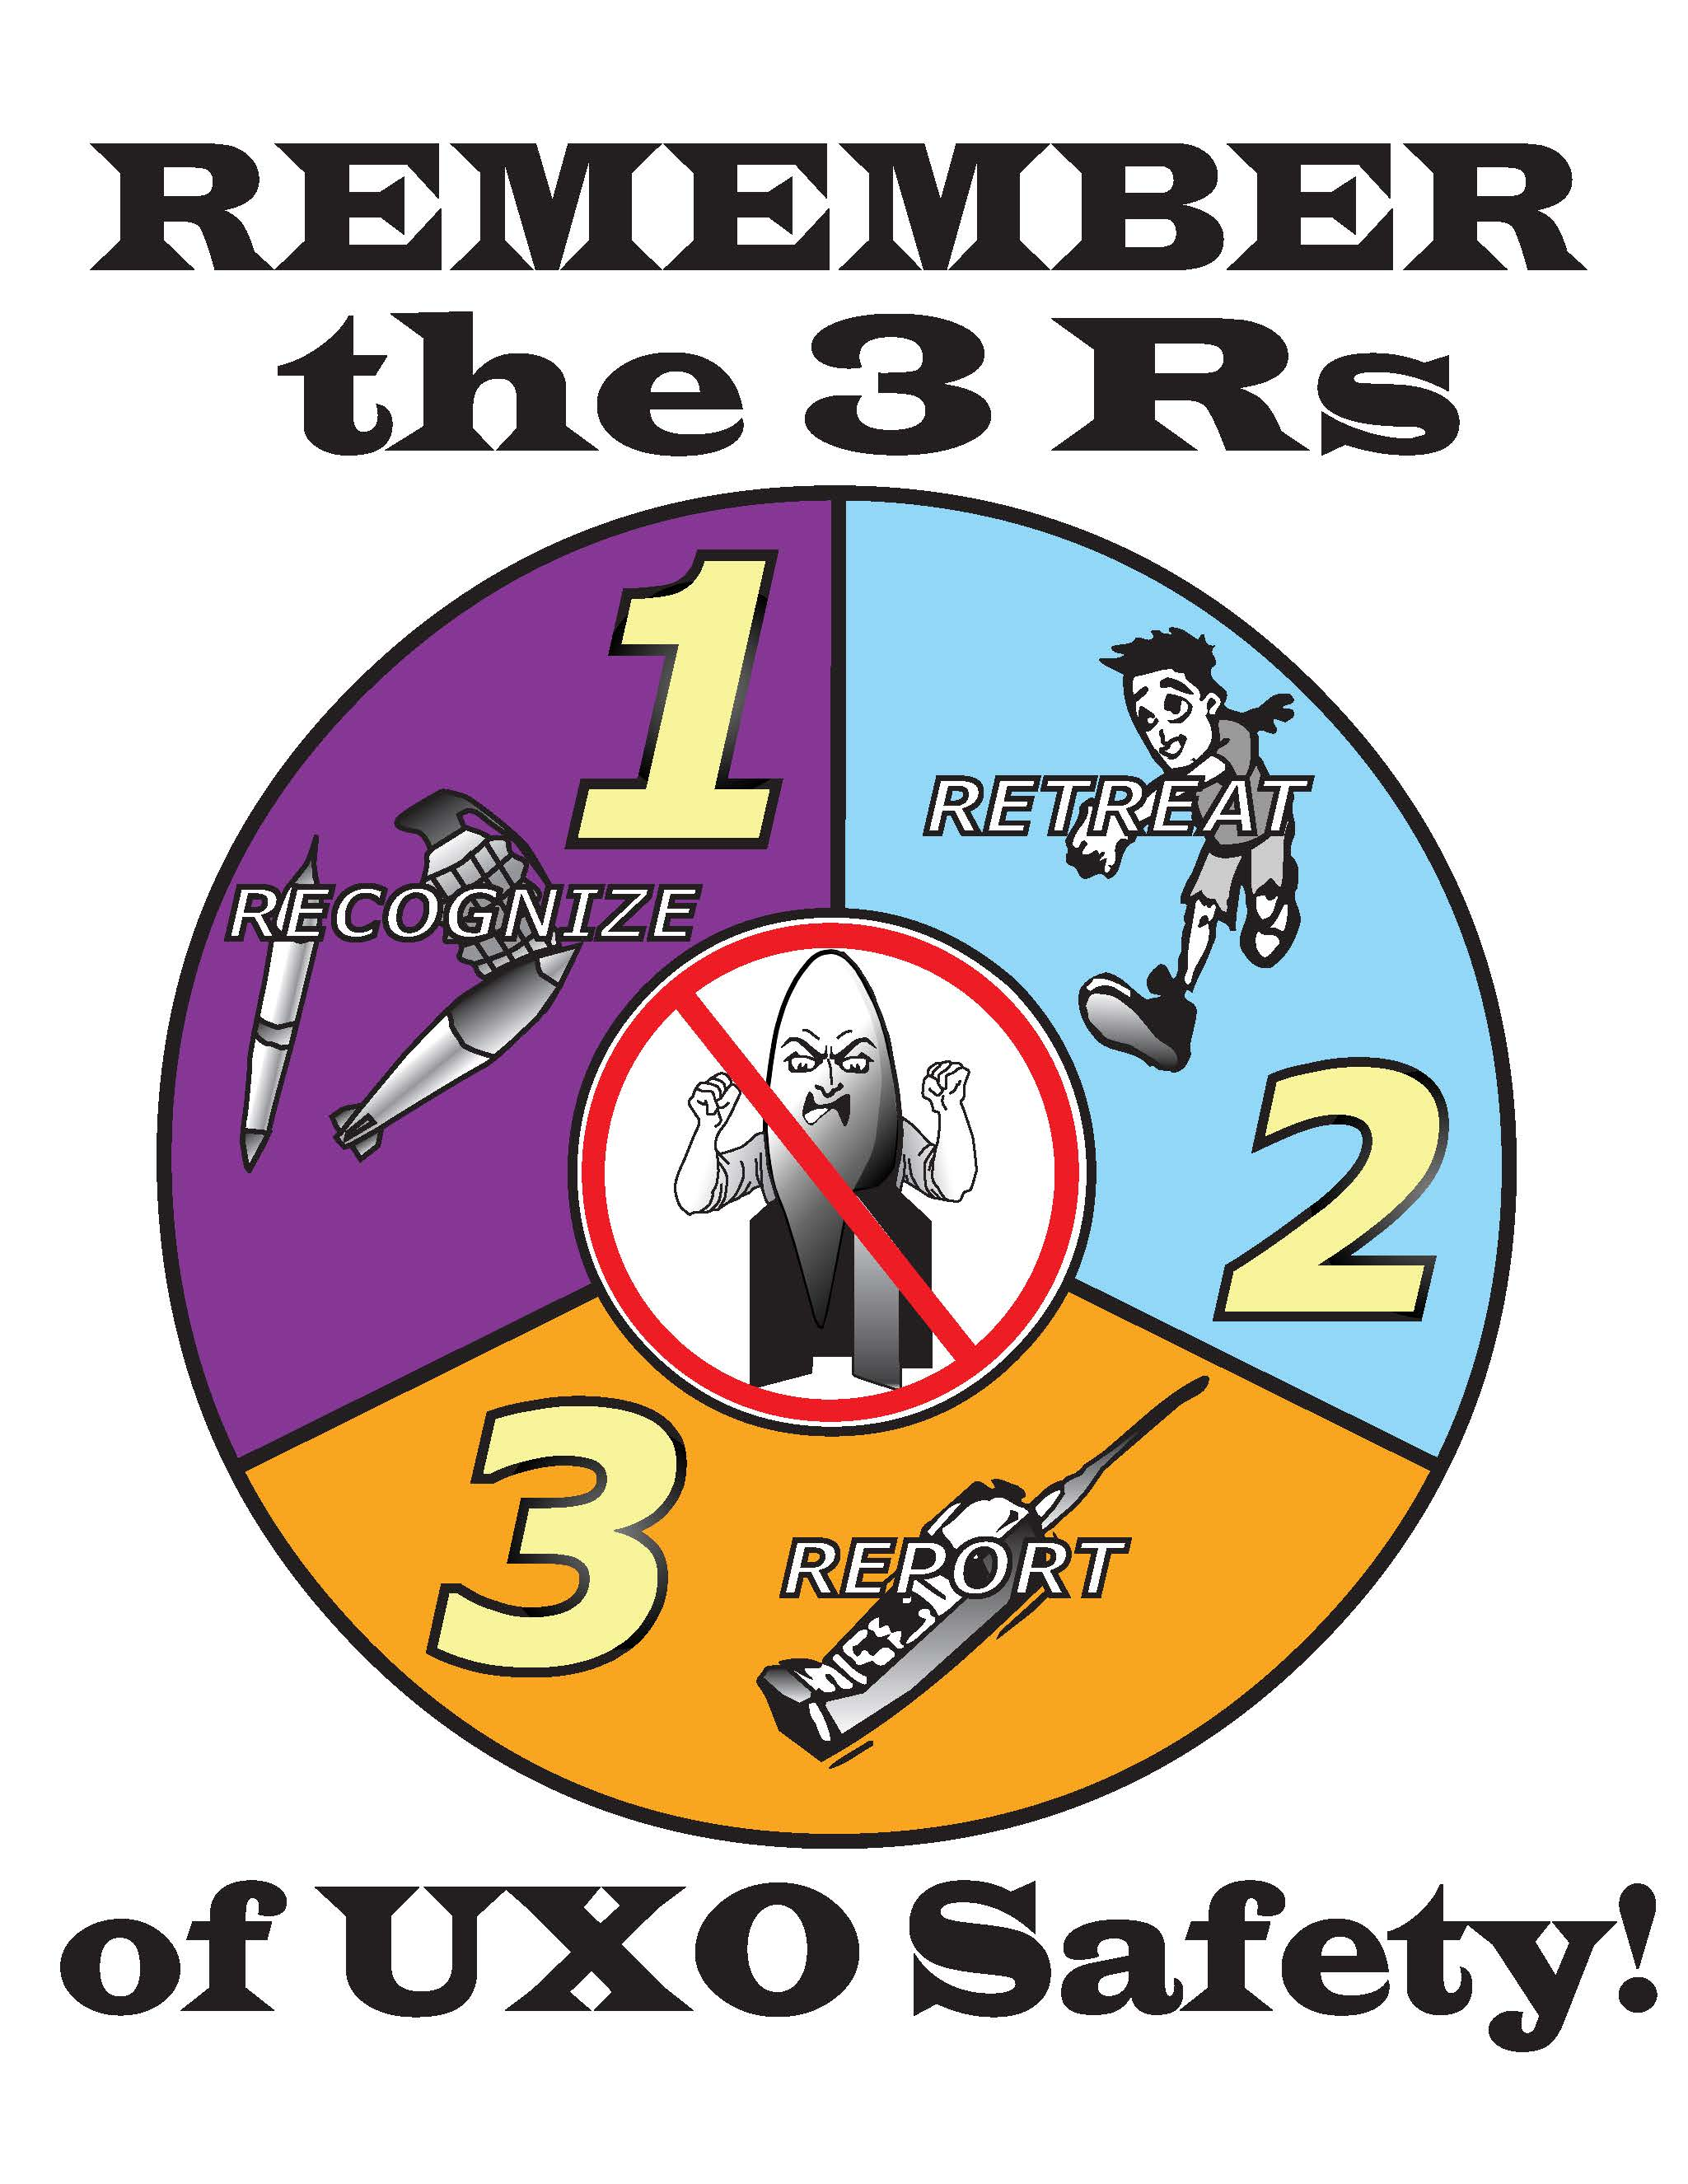 Remember the three Rs of UXO safety!